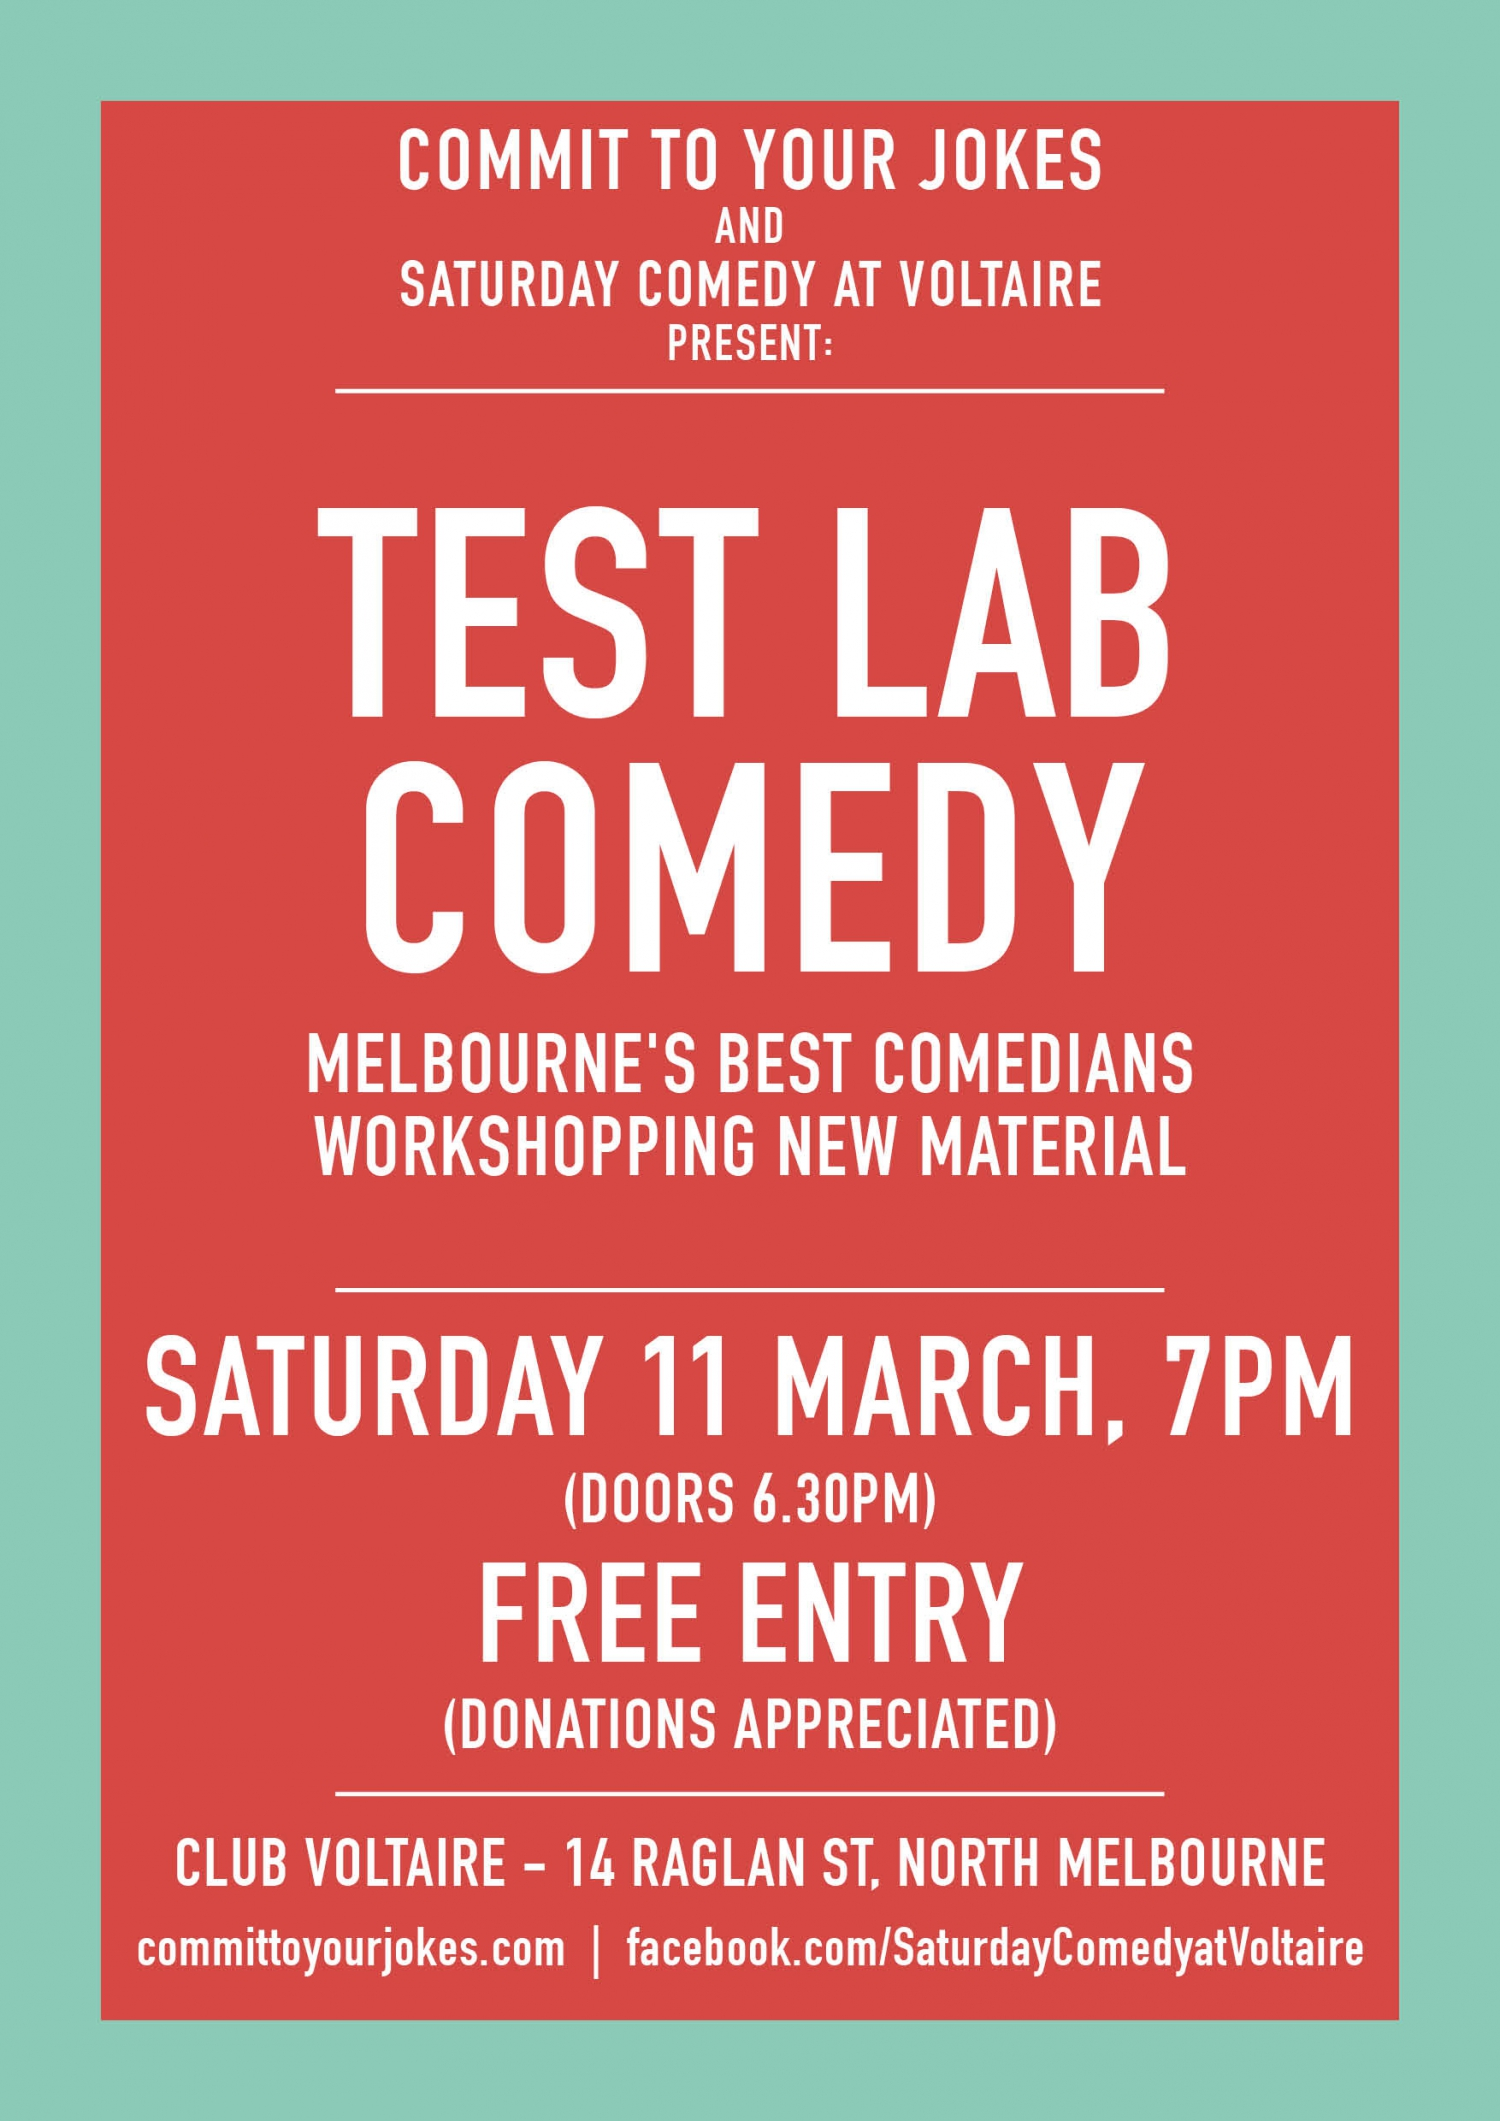 Test Lab Comedy - March 11 - FREE ENTRY!